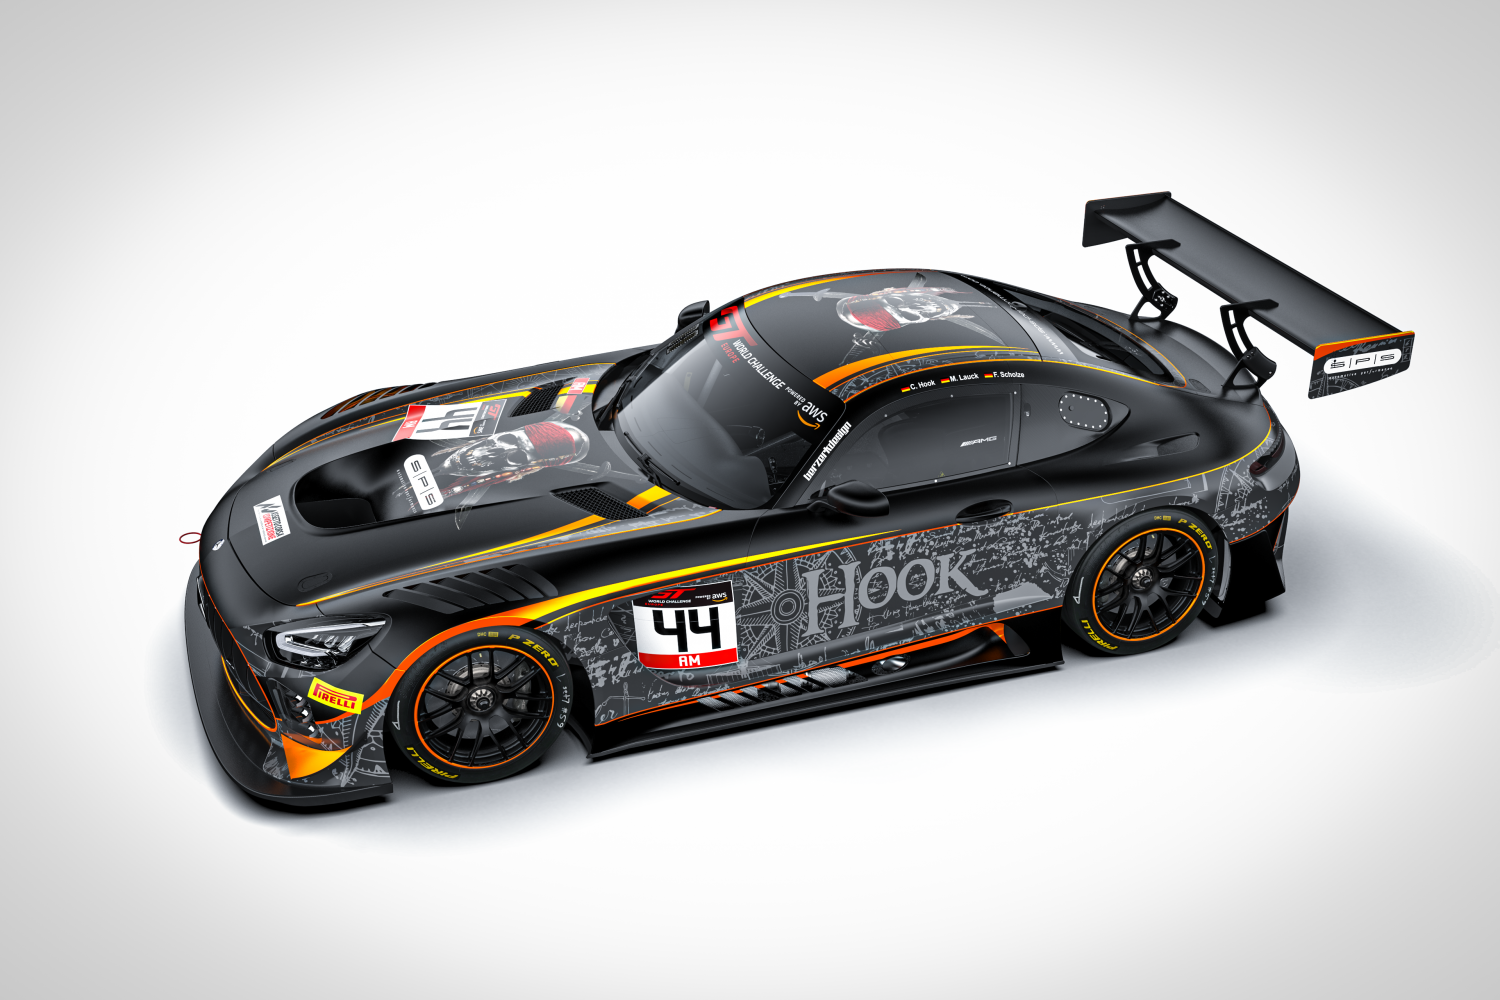 SPS Automotive confirms drivers for Endurance Cup effort with Mercedes-AMG